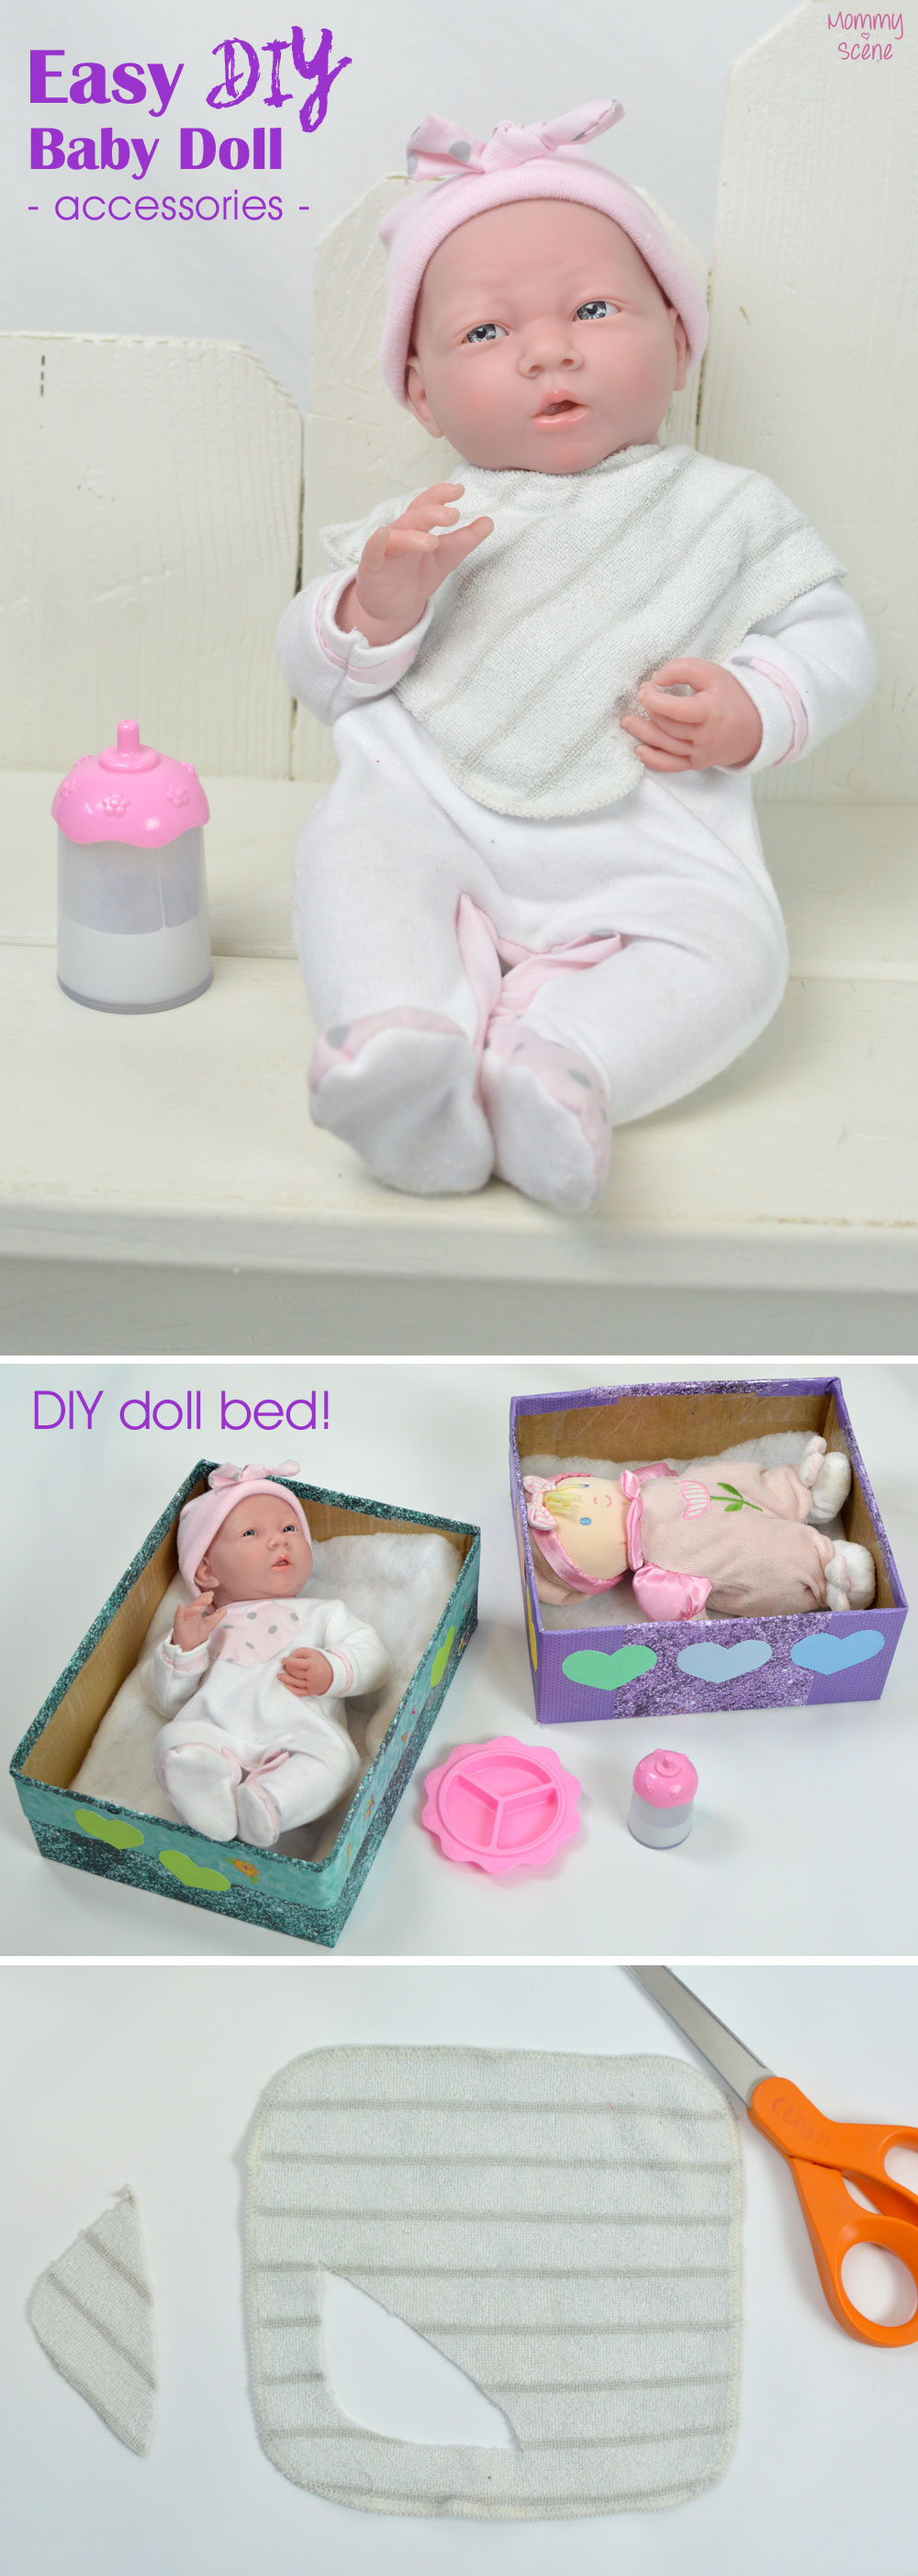 How to make a DIY baby doll bib from a wash cloth - Mommy Scene